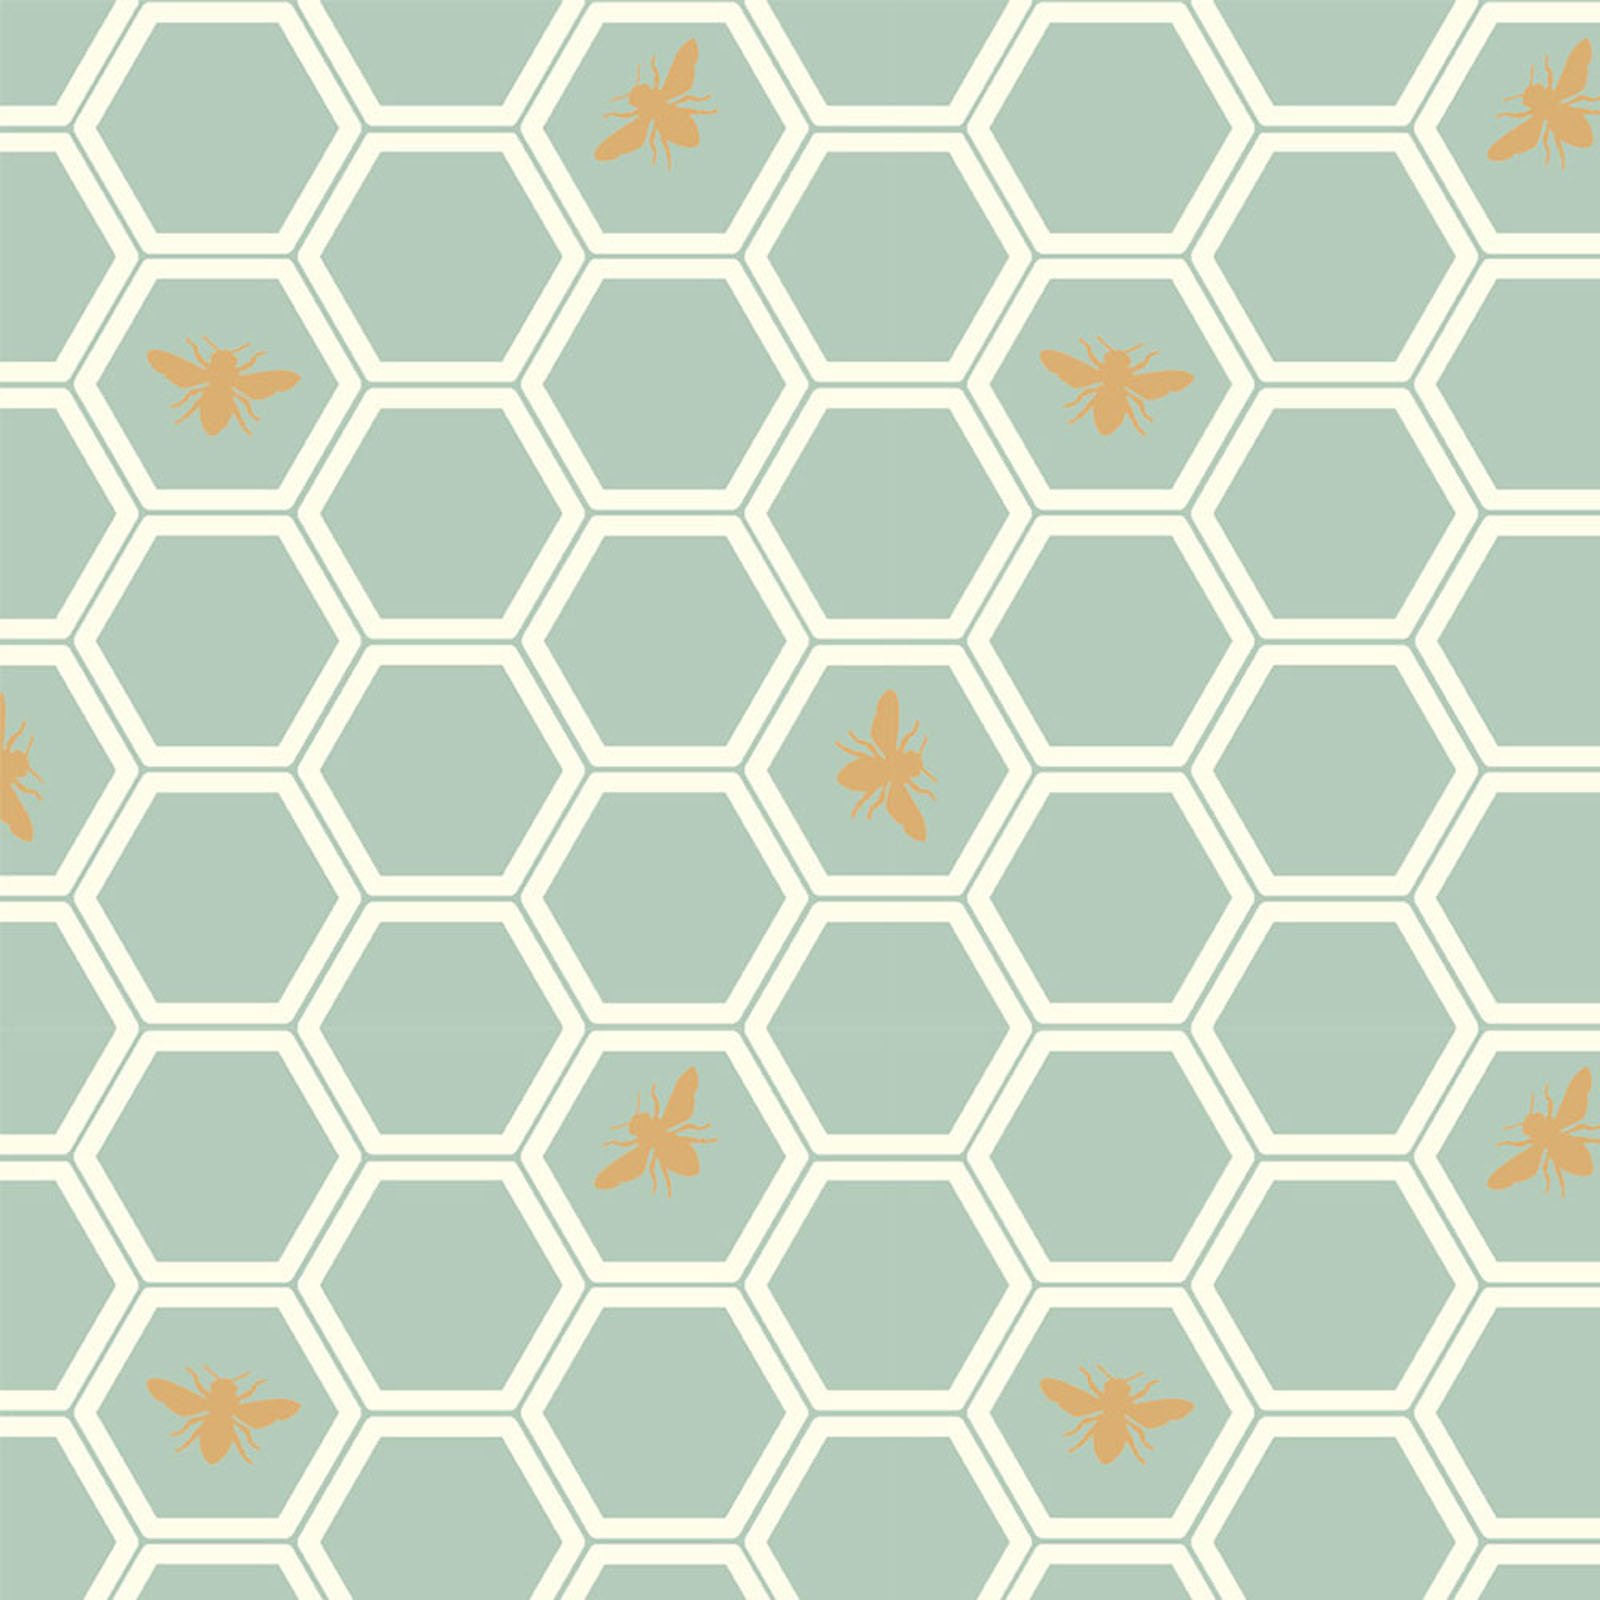 Mod Nouveau- Honeycomb- Mint- Jay-Cyn- Birch Fabrics- Organic Cotton